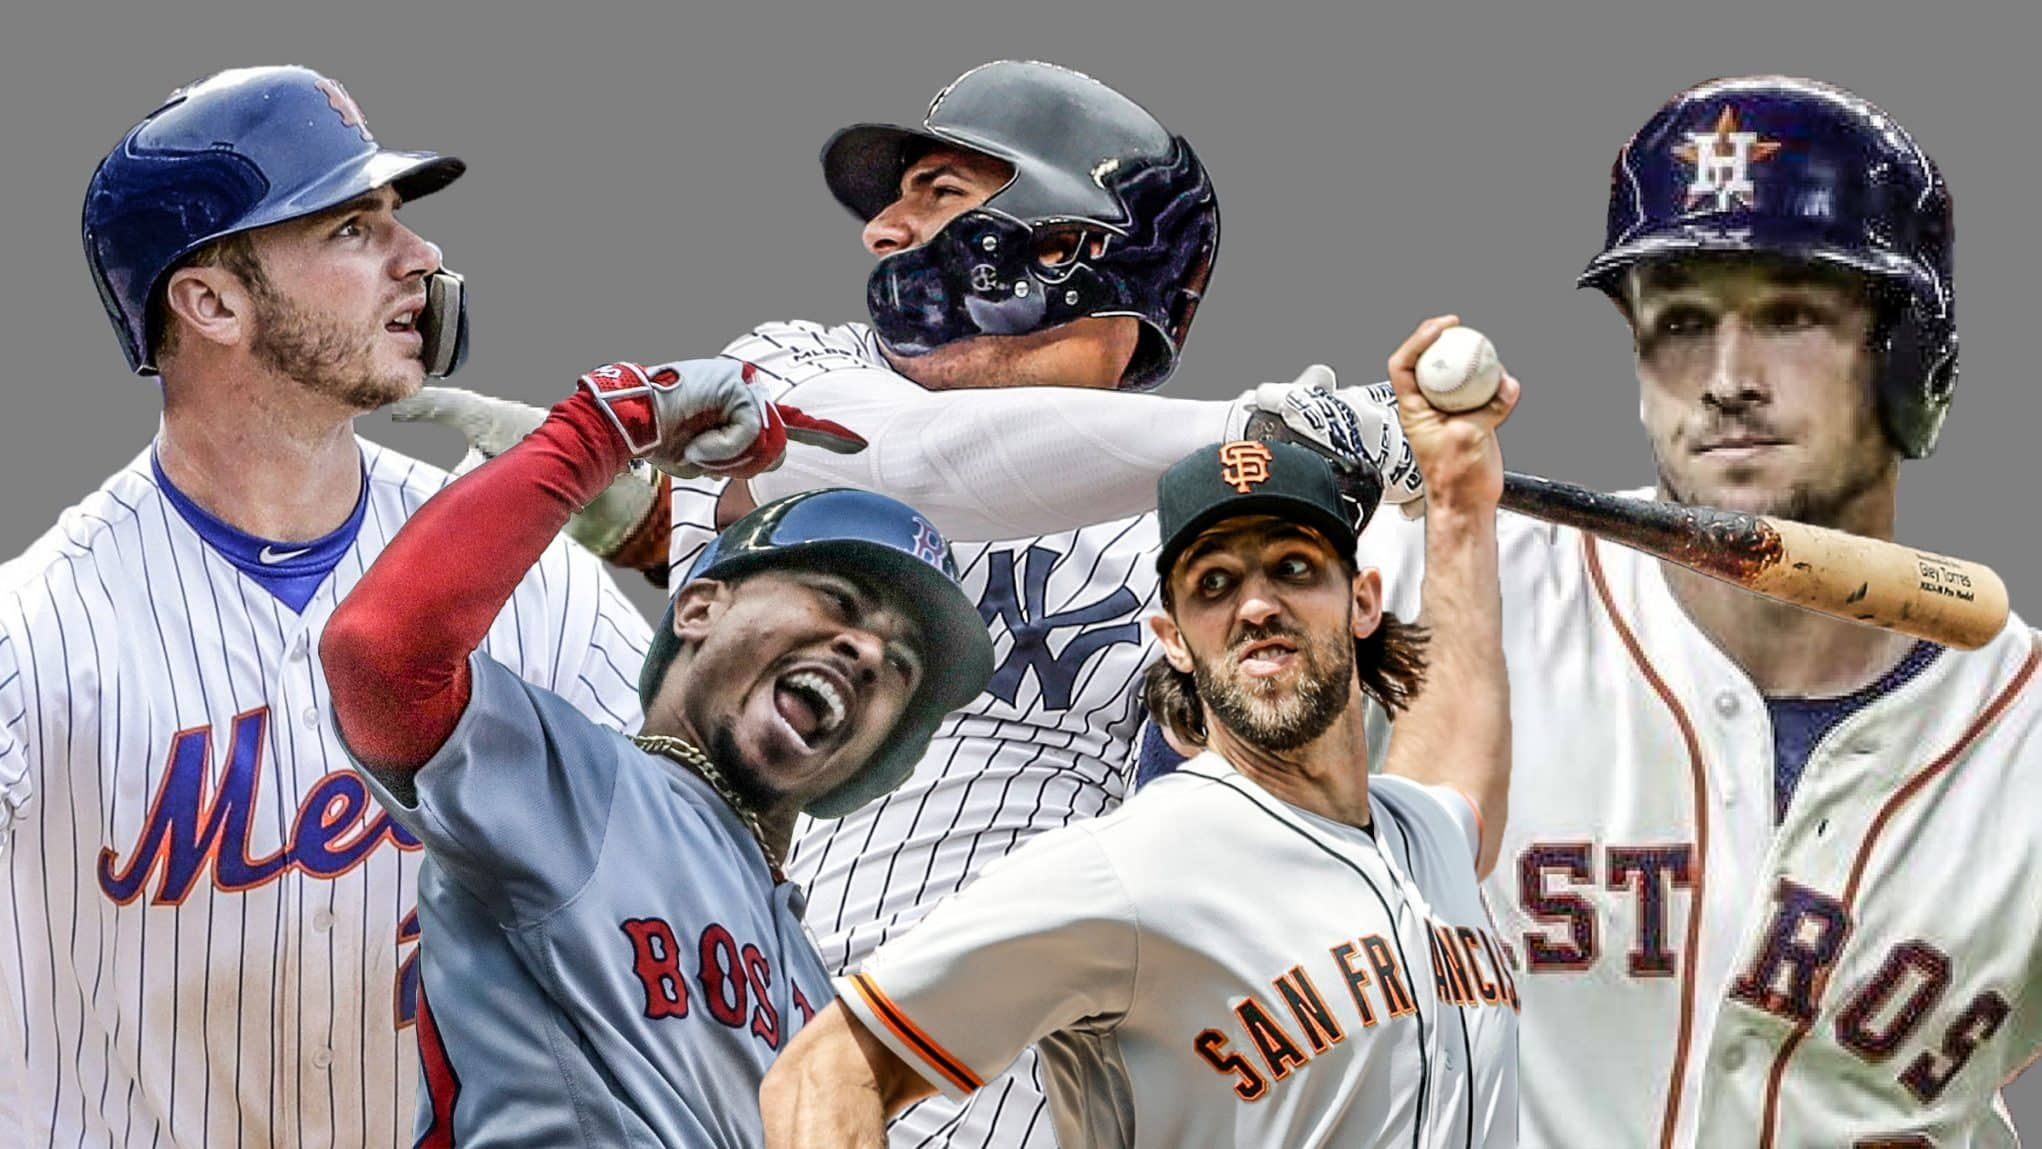 Mlb Trade Rumors New York Yankees Trade For Luis Castillo Possible But Cincinnati Reds Has A Condition New York Yankees Luis Castillo Cincinnati Reds